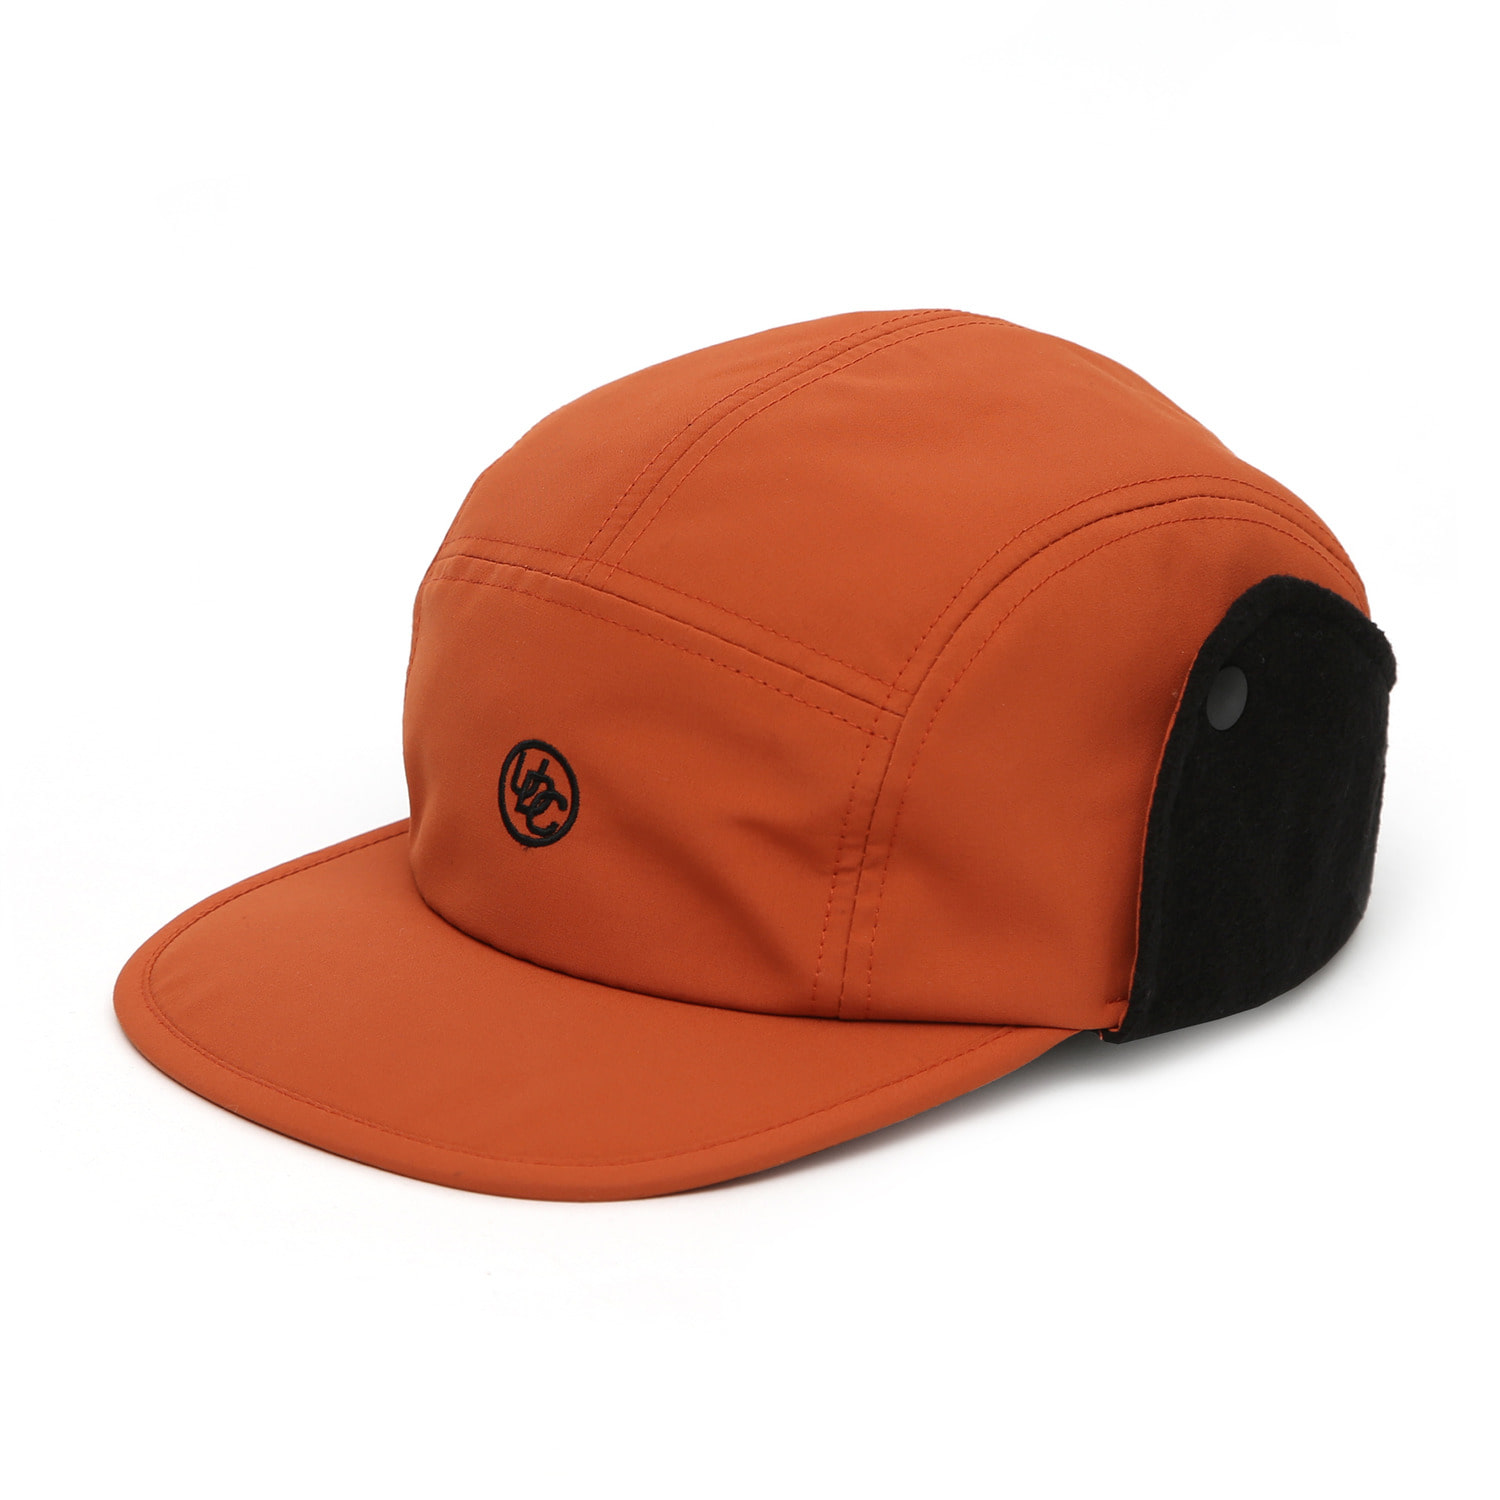 CAMP / UNION UDC / EAR FLAP / ORANGE